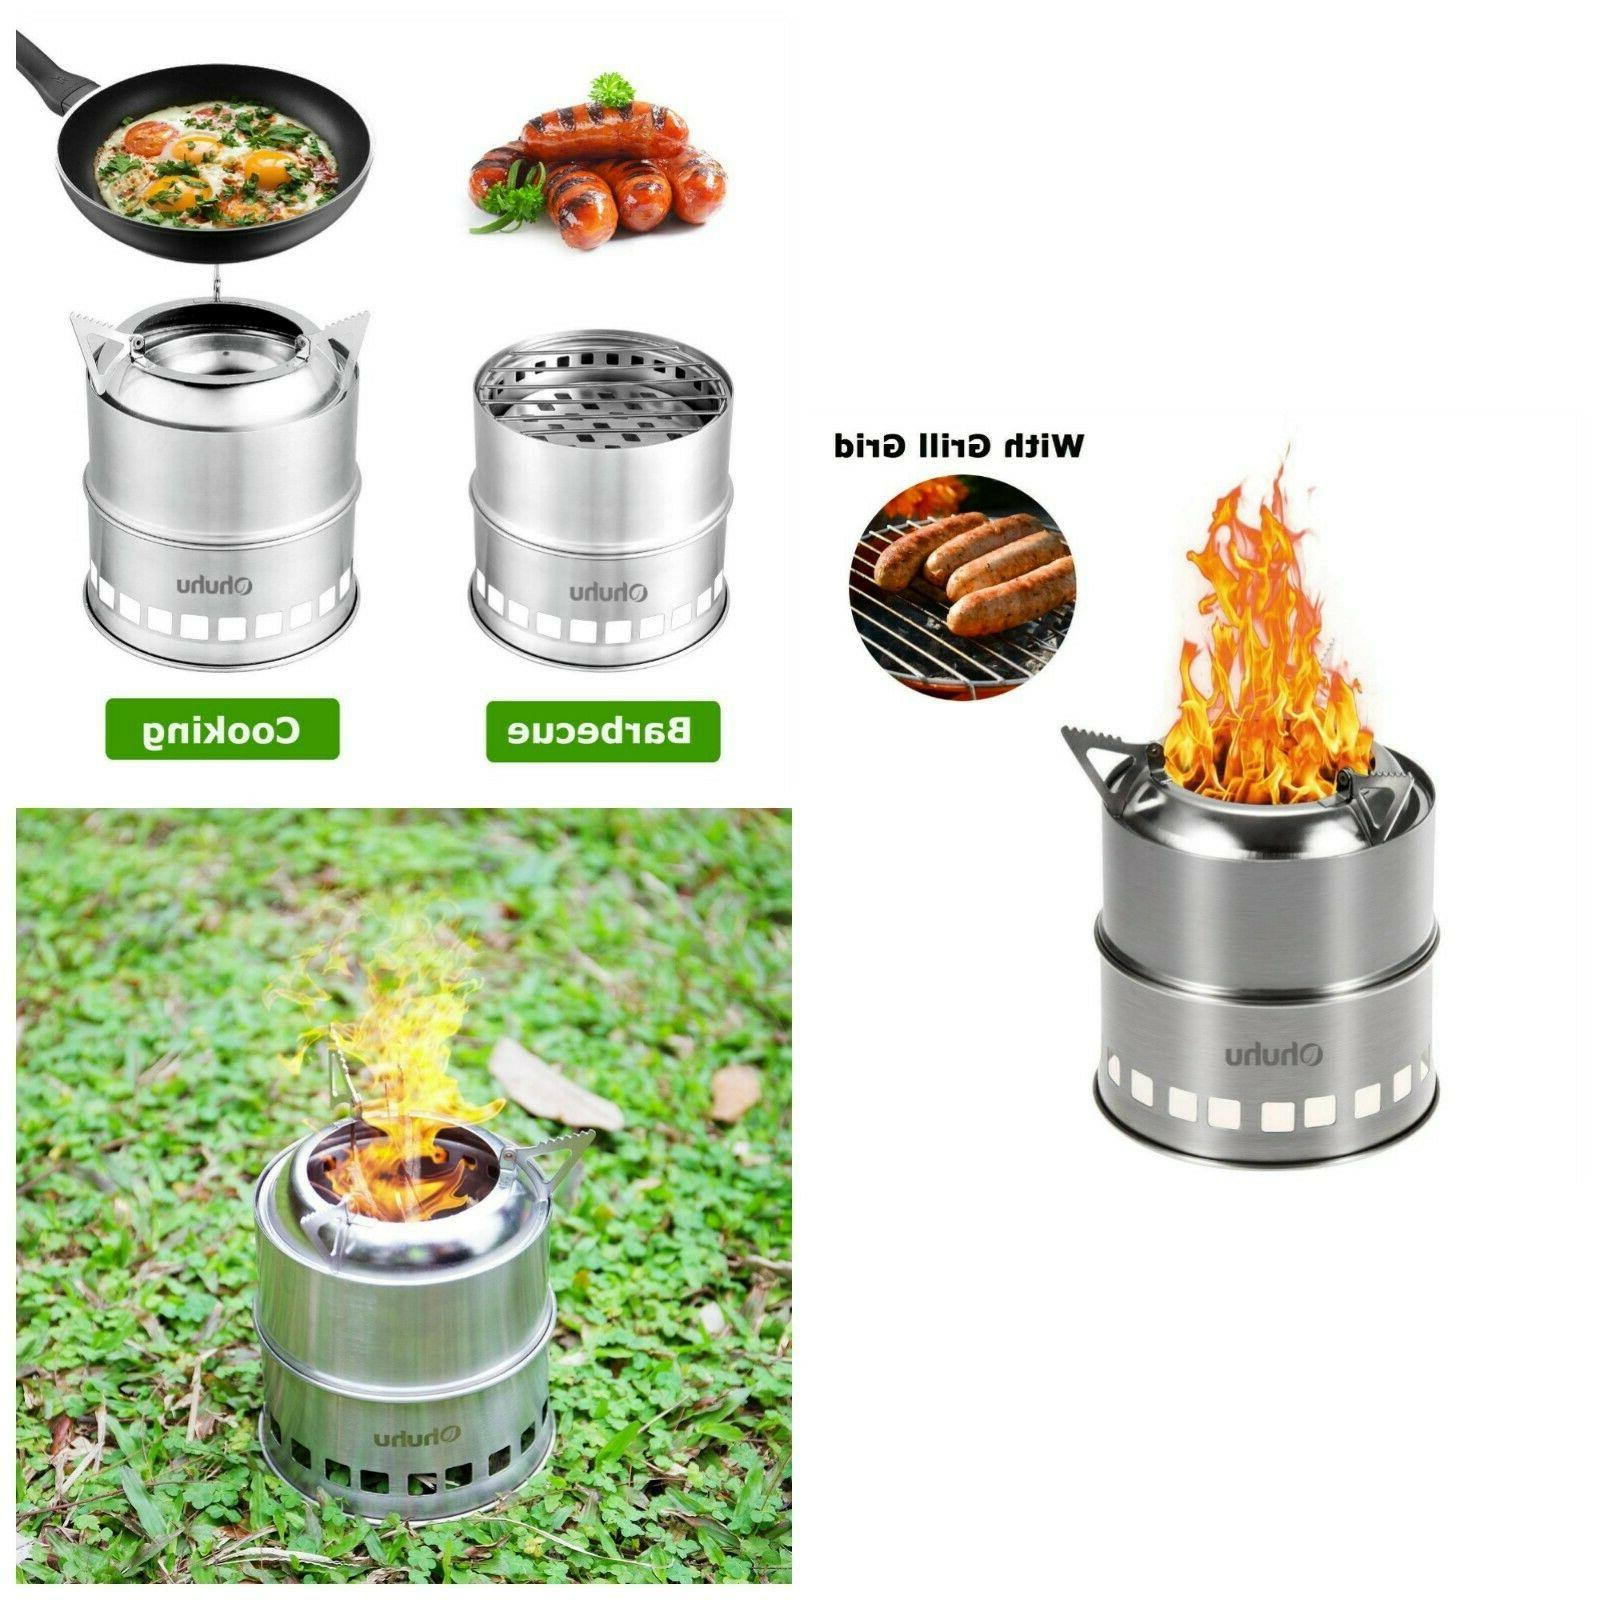 Camping Stove With Grill Grid Backpacking Portable Wood Burn